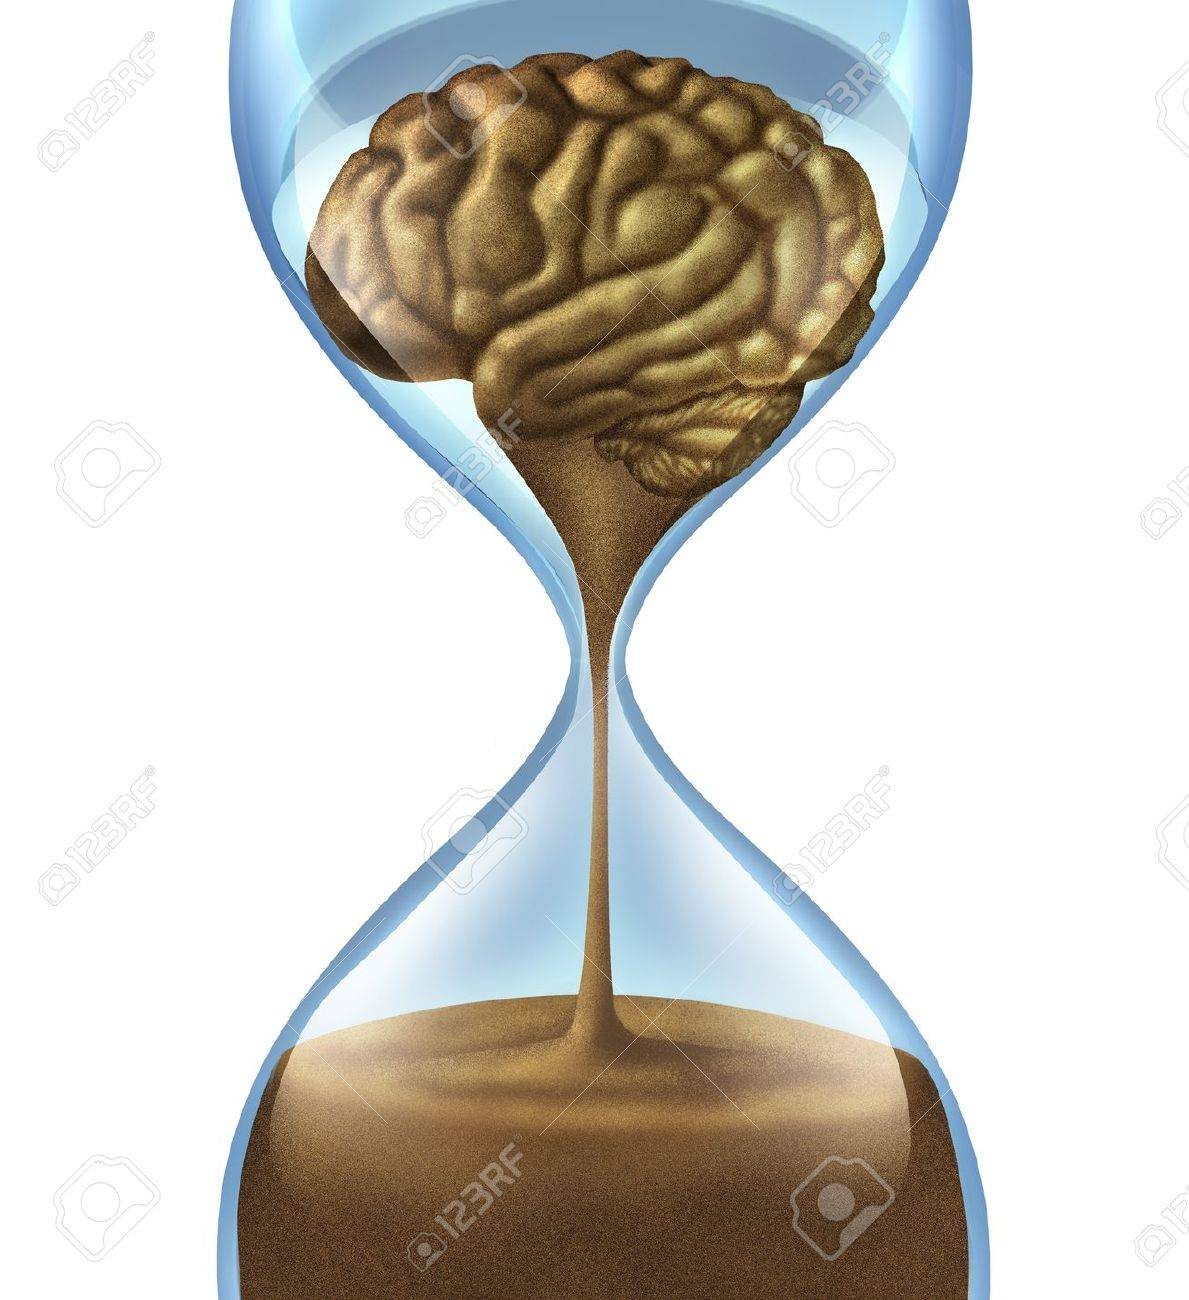 Losing your memory problems as a mental illness symbol of Dementia and Alzheimer Stock Photo - 14345347